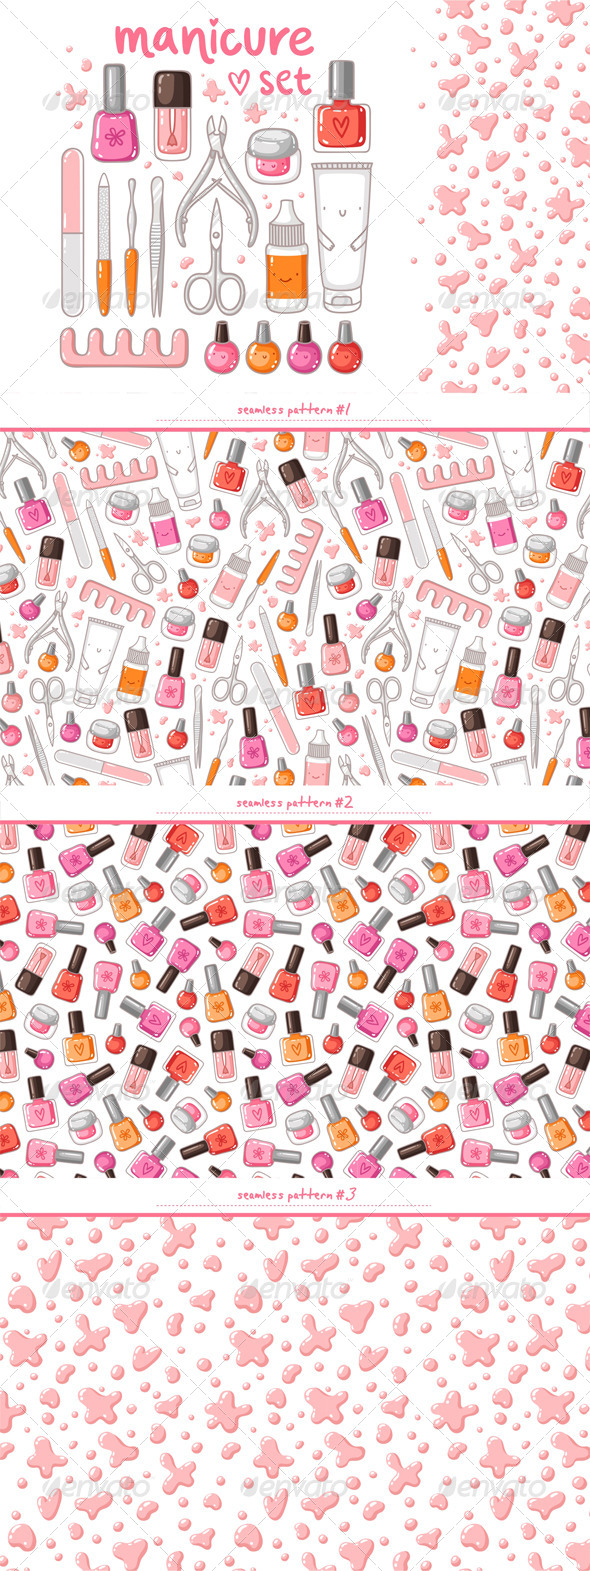 GraphicRiver Manicure 7298610